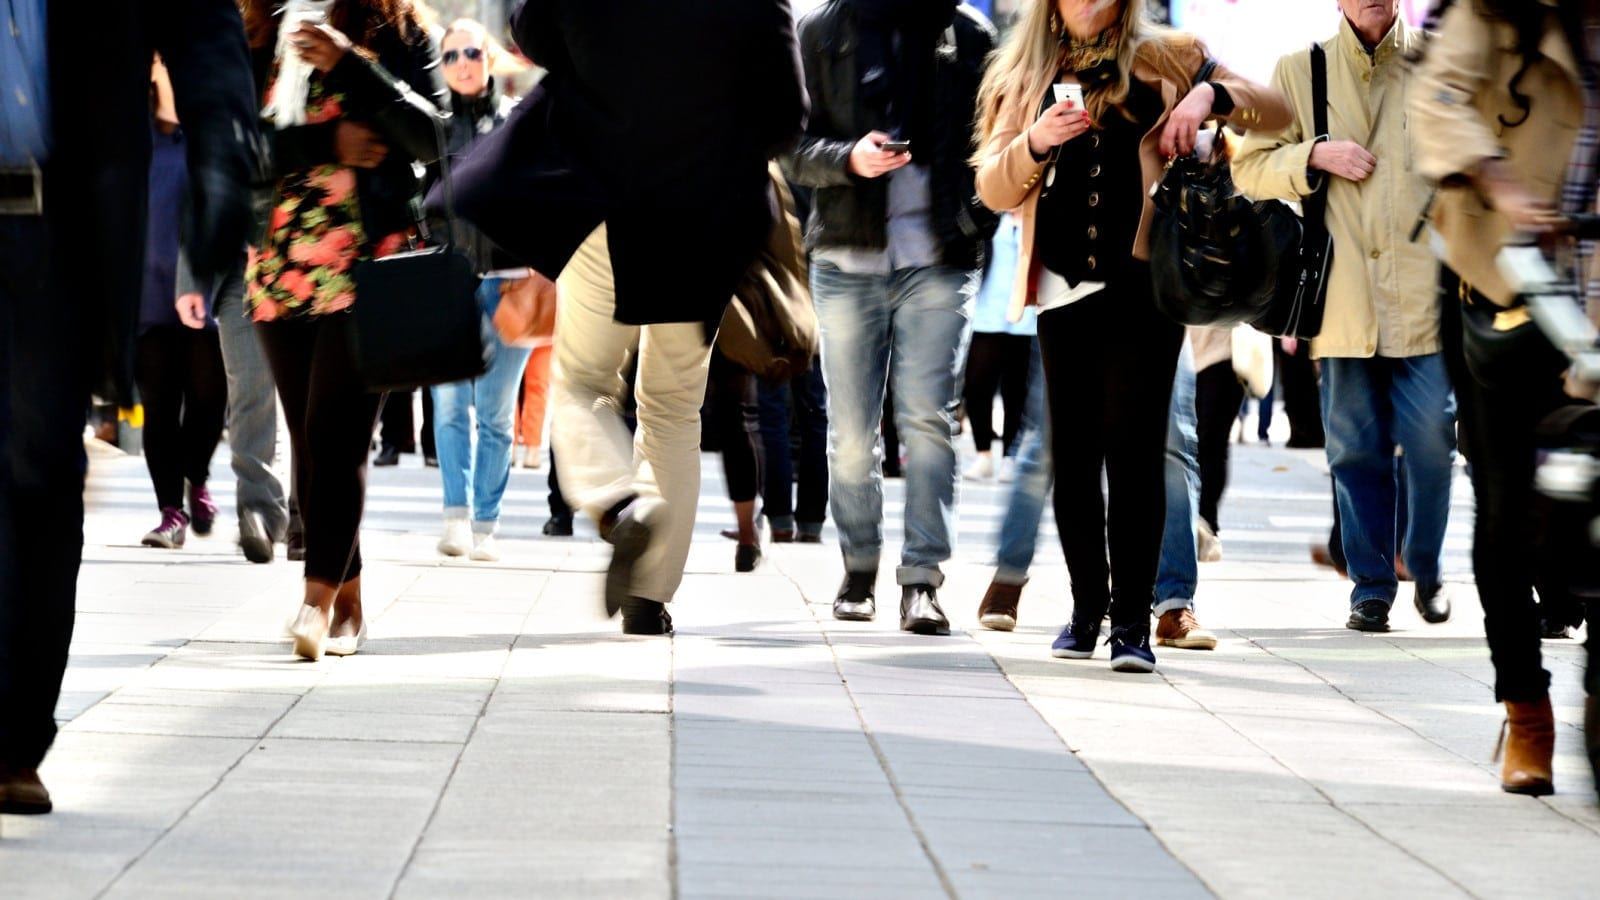 Pedestrians Walking On A City Sidewalk Stock Photo